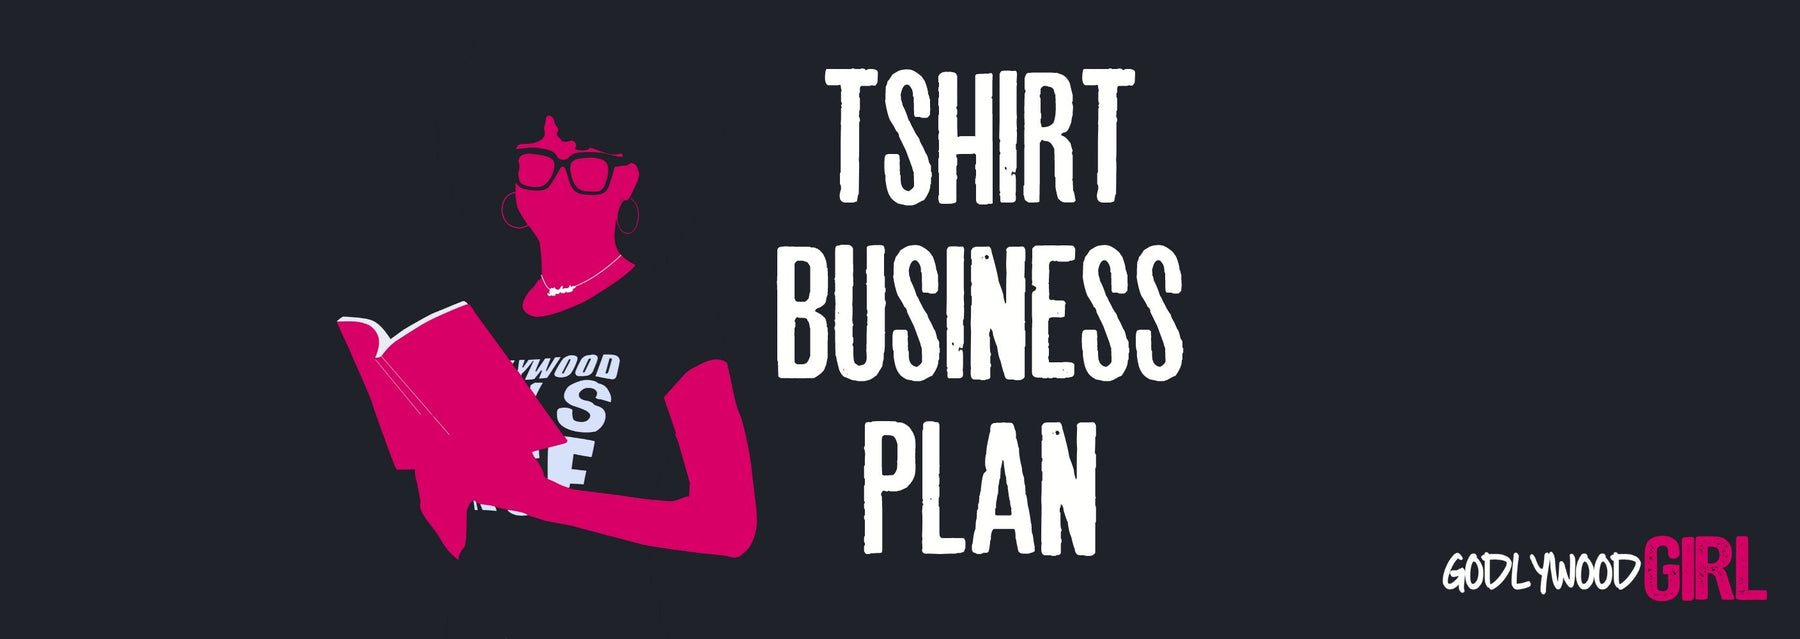 T Shirt Business Plan 2020 (How to start your own T-shirt business In 2020) | Christian Entrepreneur